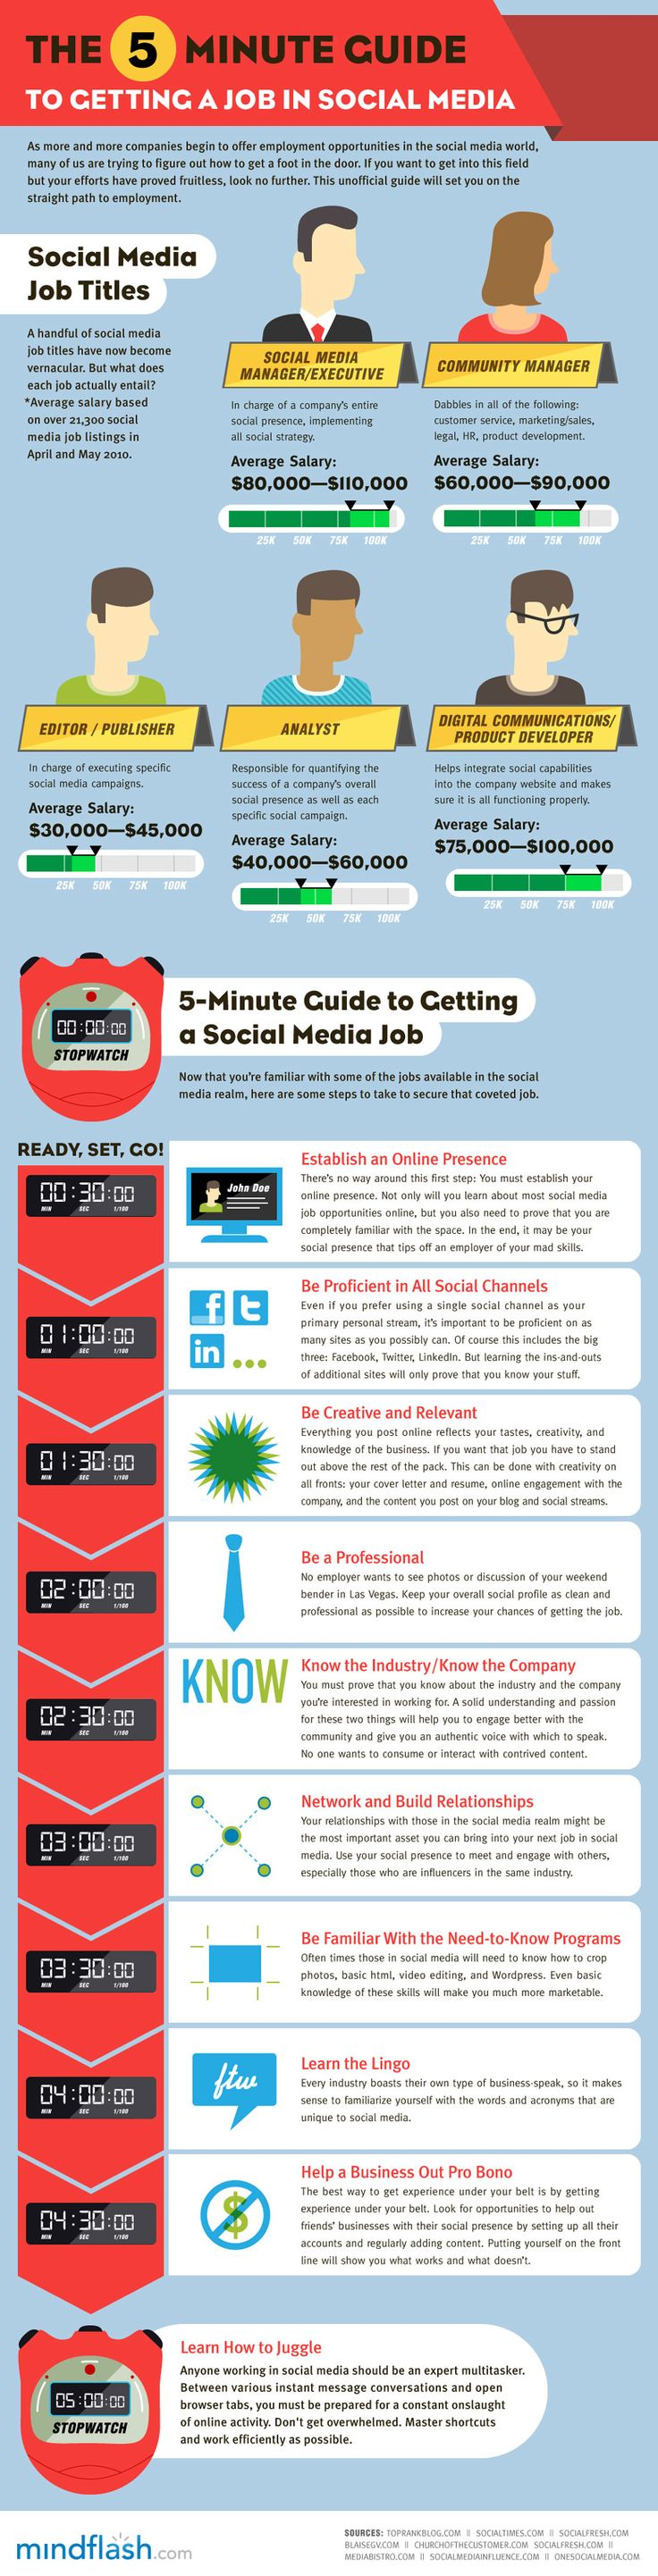 The Quick Guide to Getting a Social Media Job #Infographic